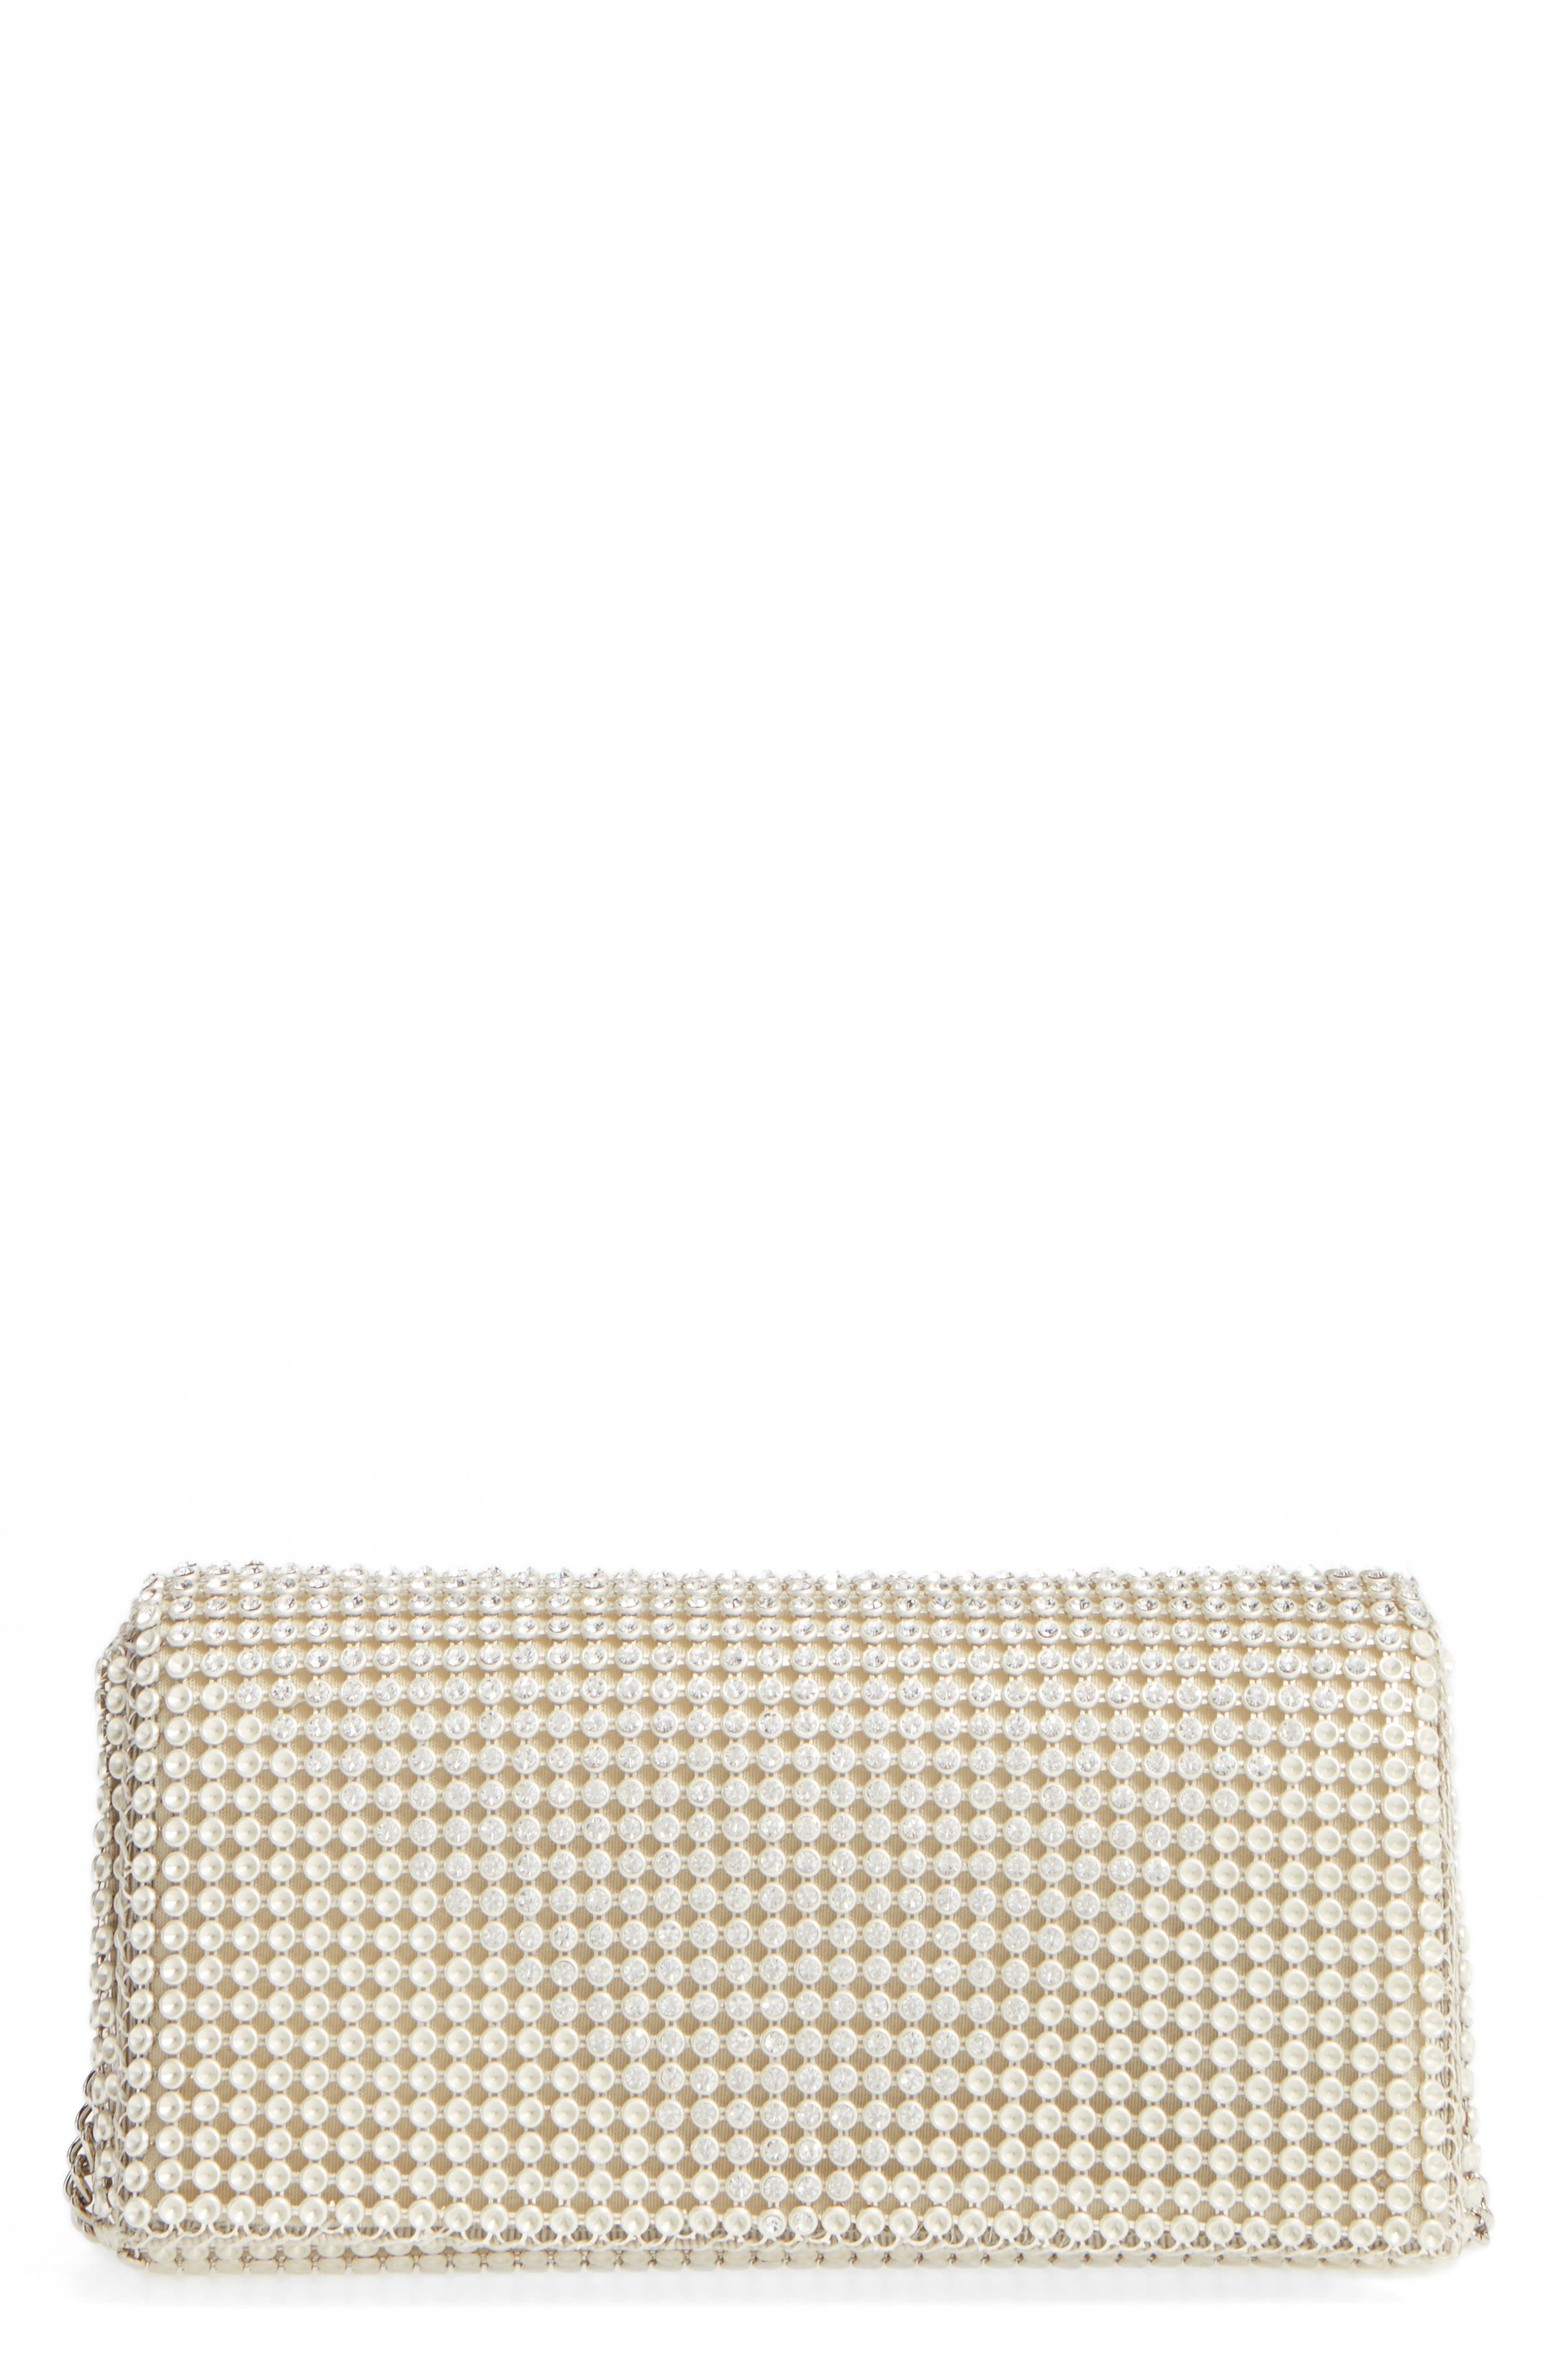 Main Image - Whiting & Davis Crystal Triangle Clutch